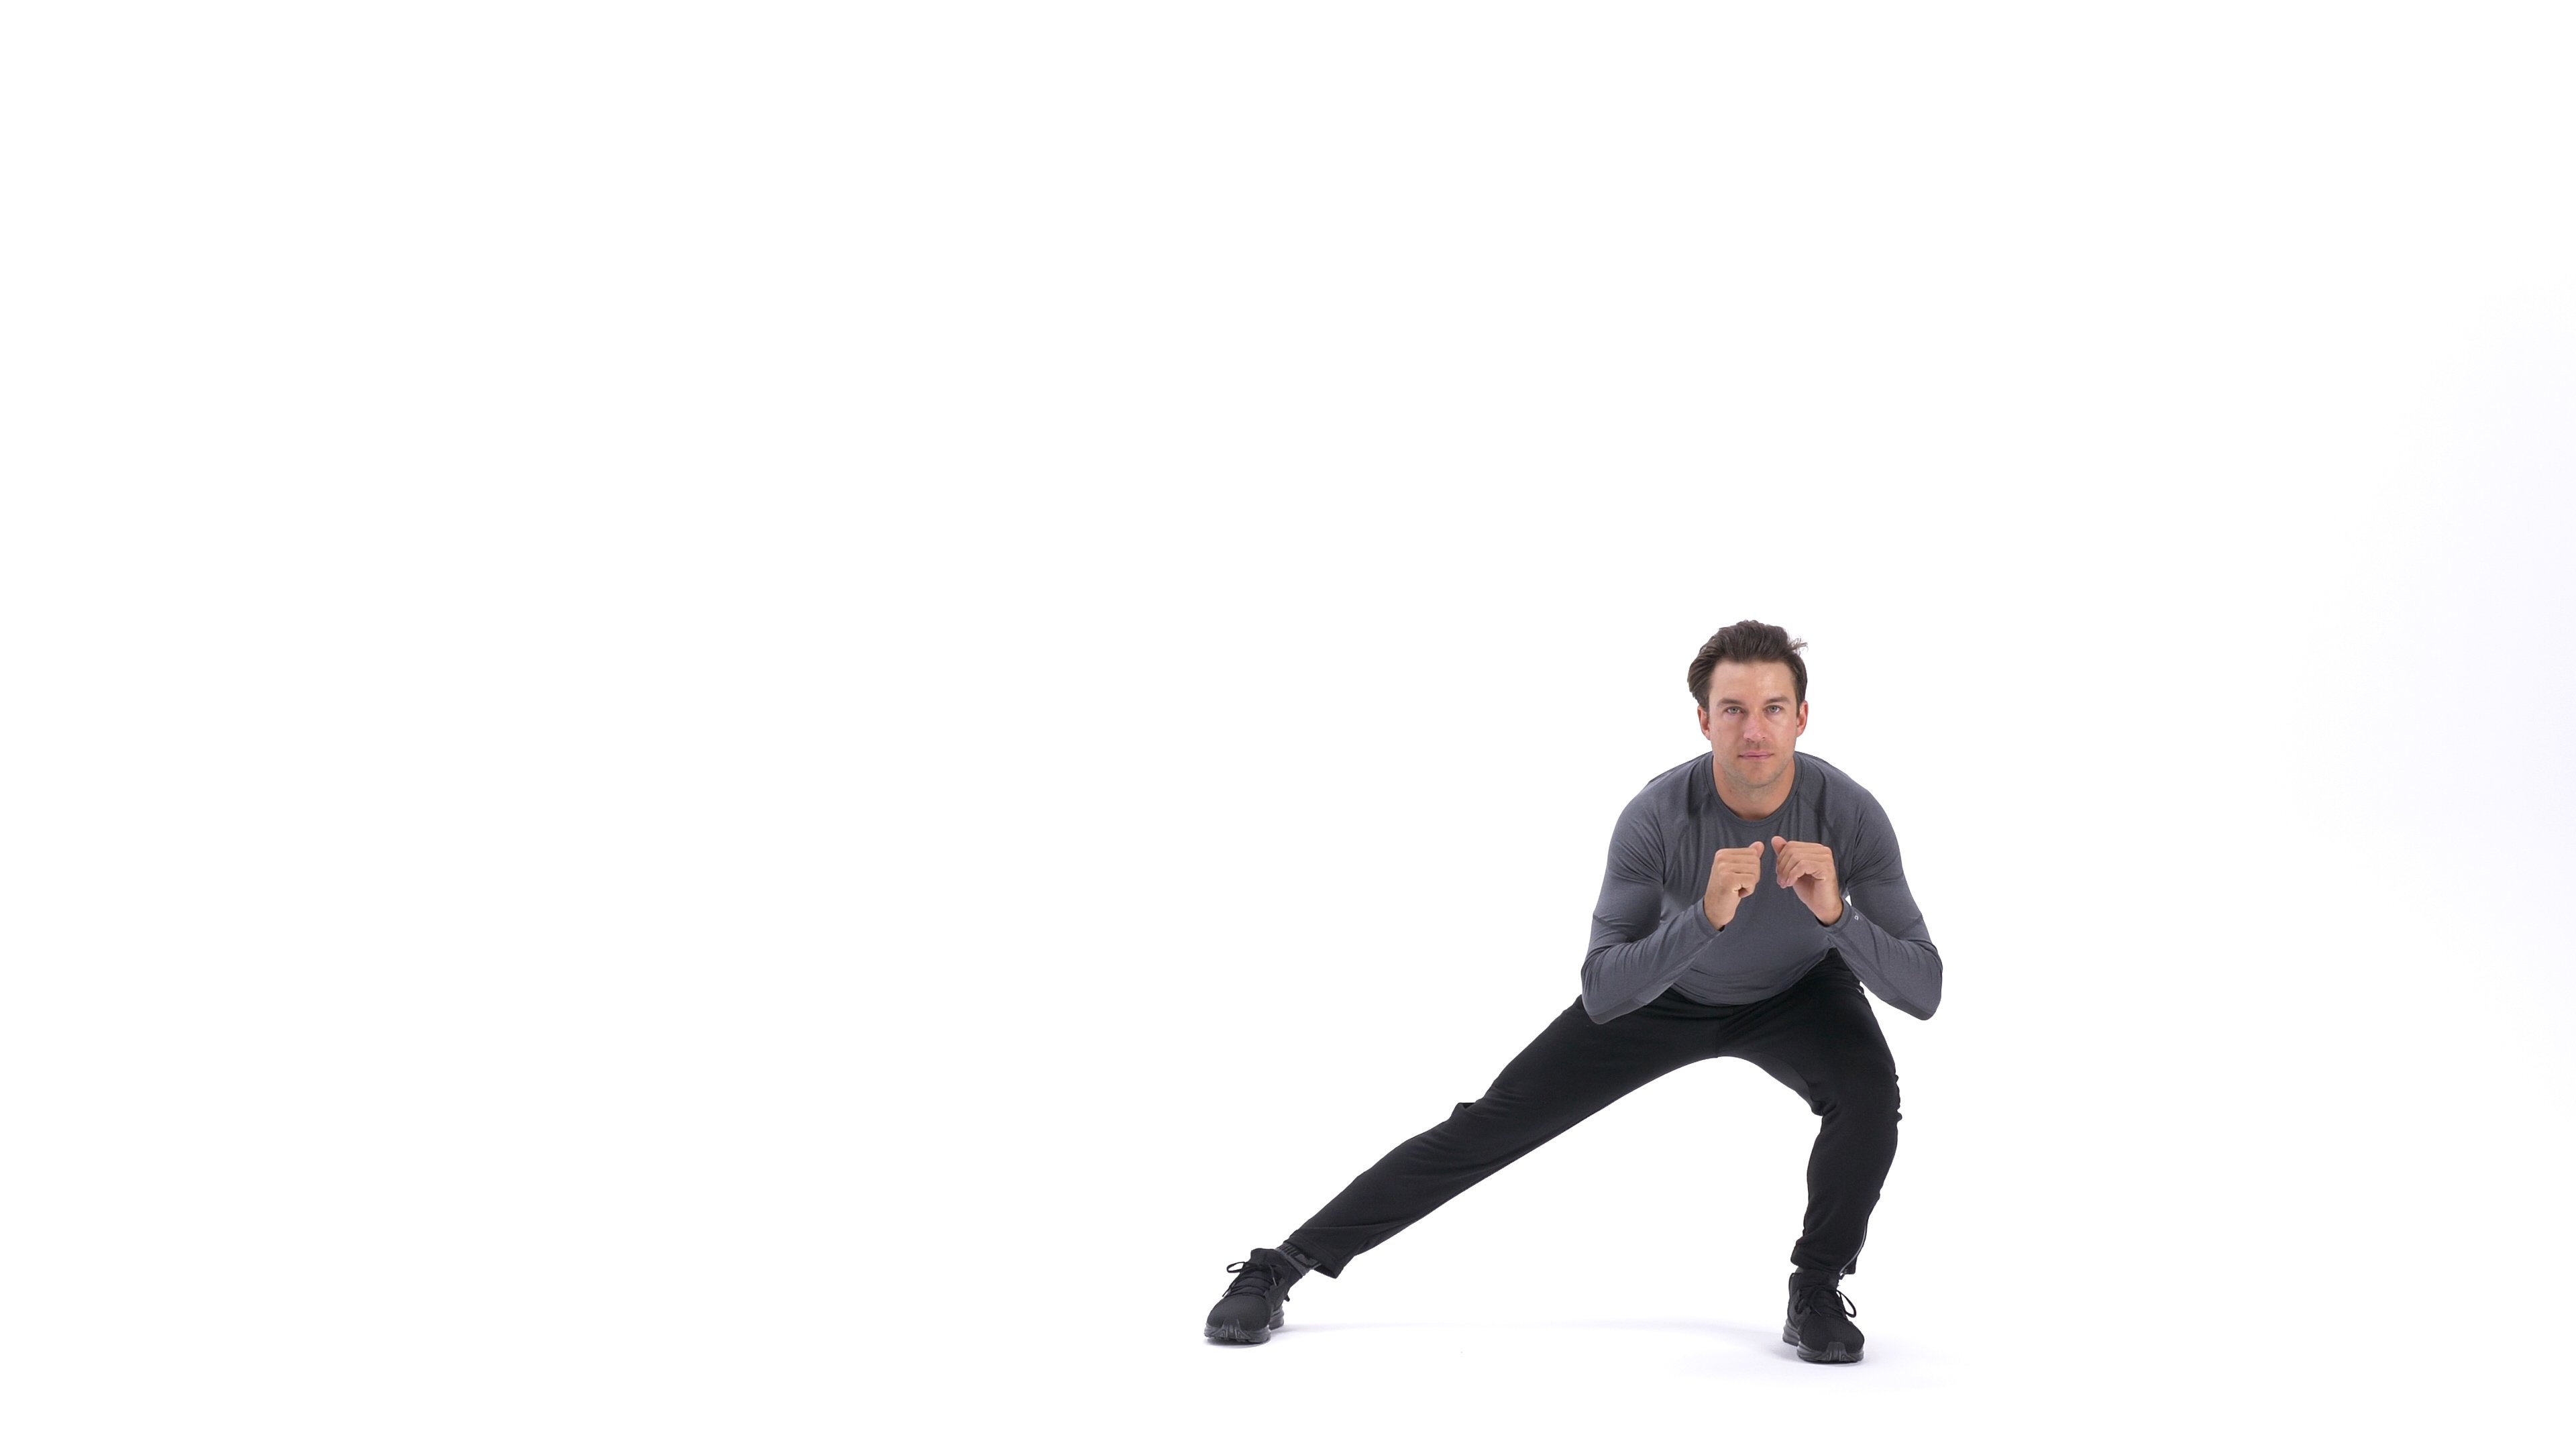 Lateral lunge image